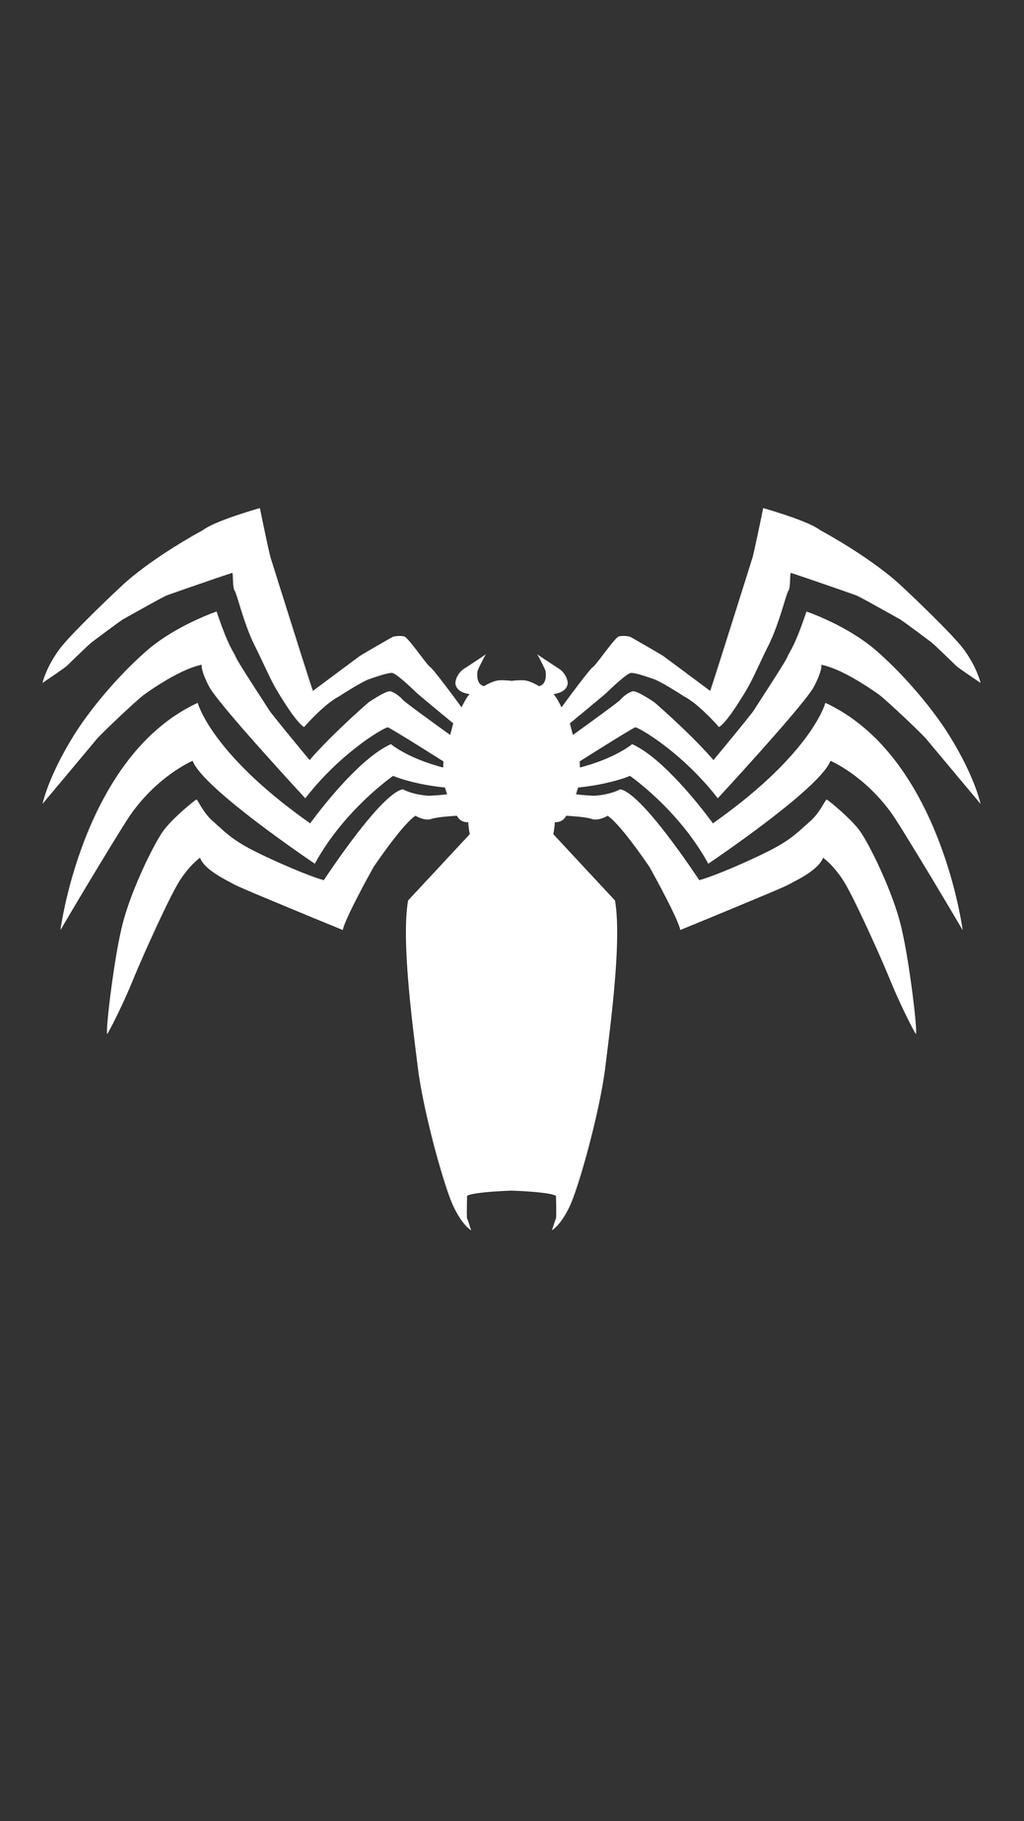 spider man  venom logo iphone wallpaper by truillusionstudios dbgfahb